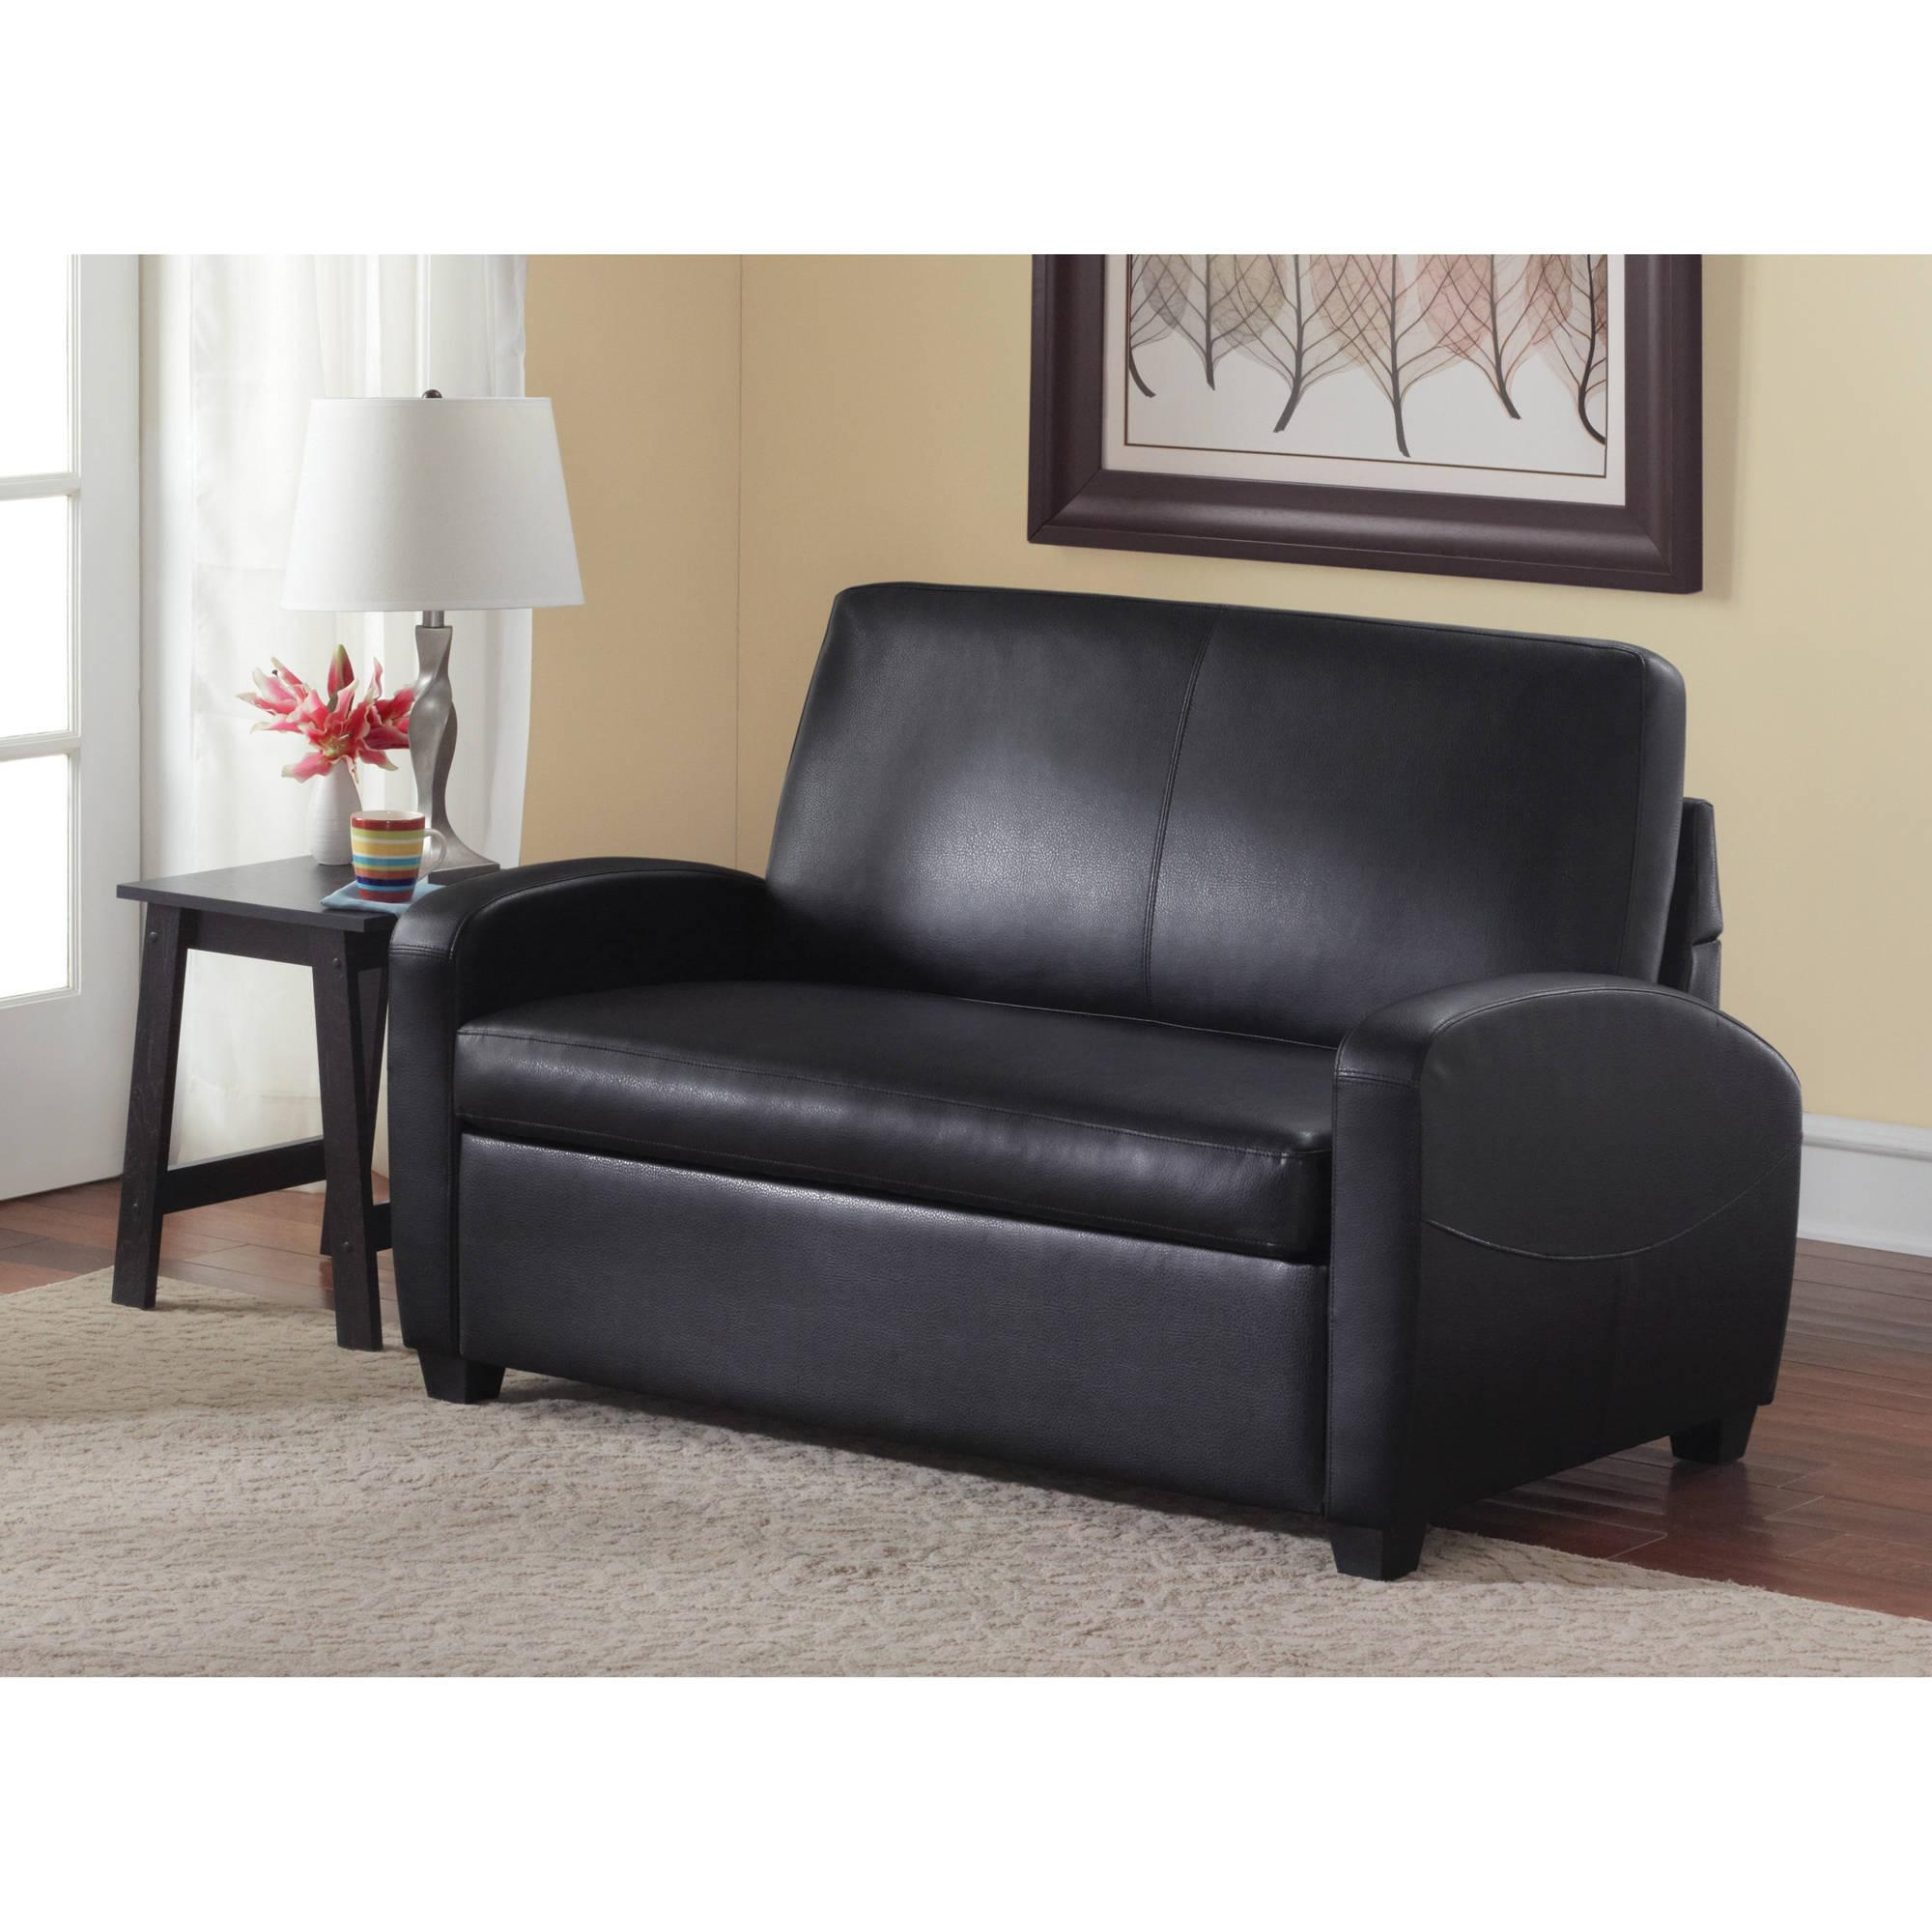 Mainstays Sofa Sleeper, Black – Walmart Intended For Faux Leather Sleeper Sofas (Image 9 of 20)